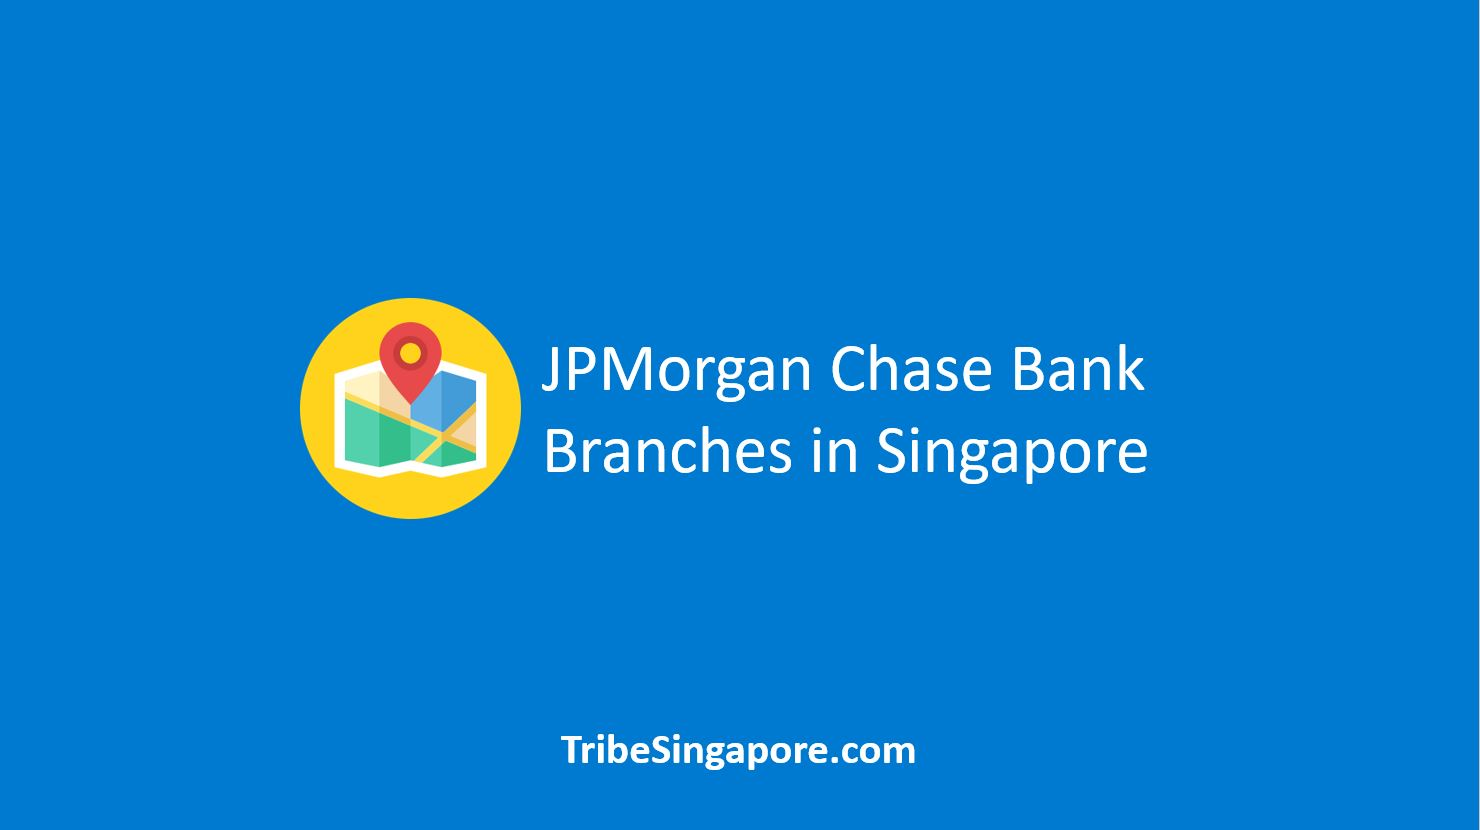 JPMorgan Chase Bank Branches in Singapore